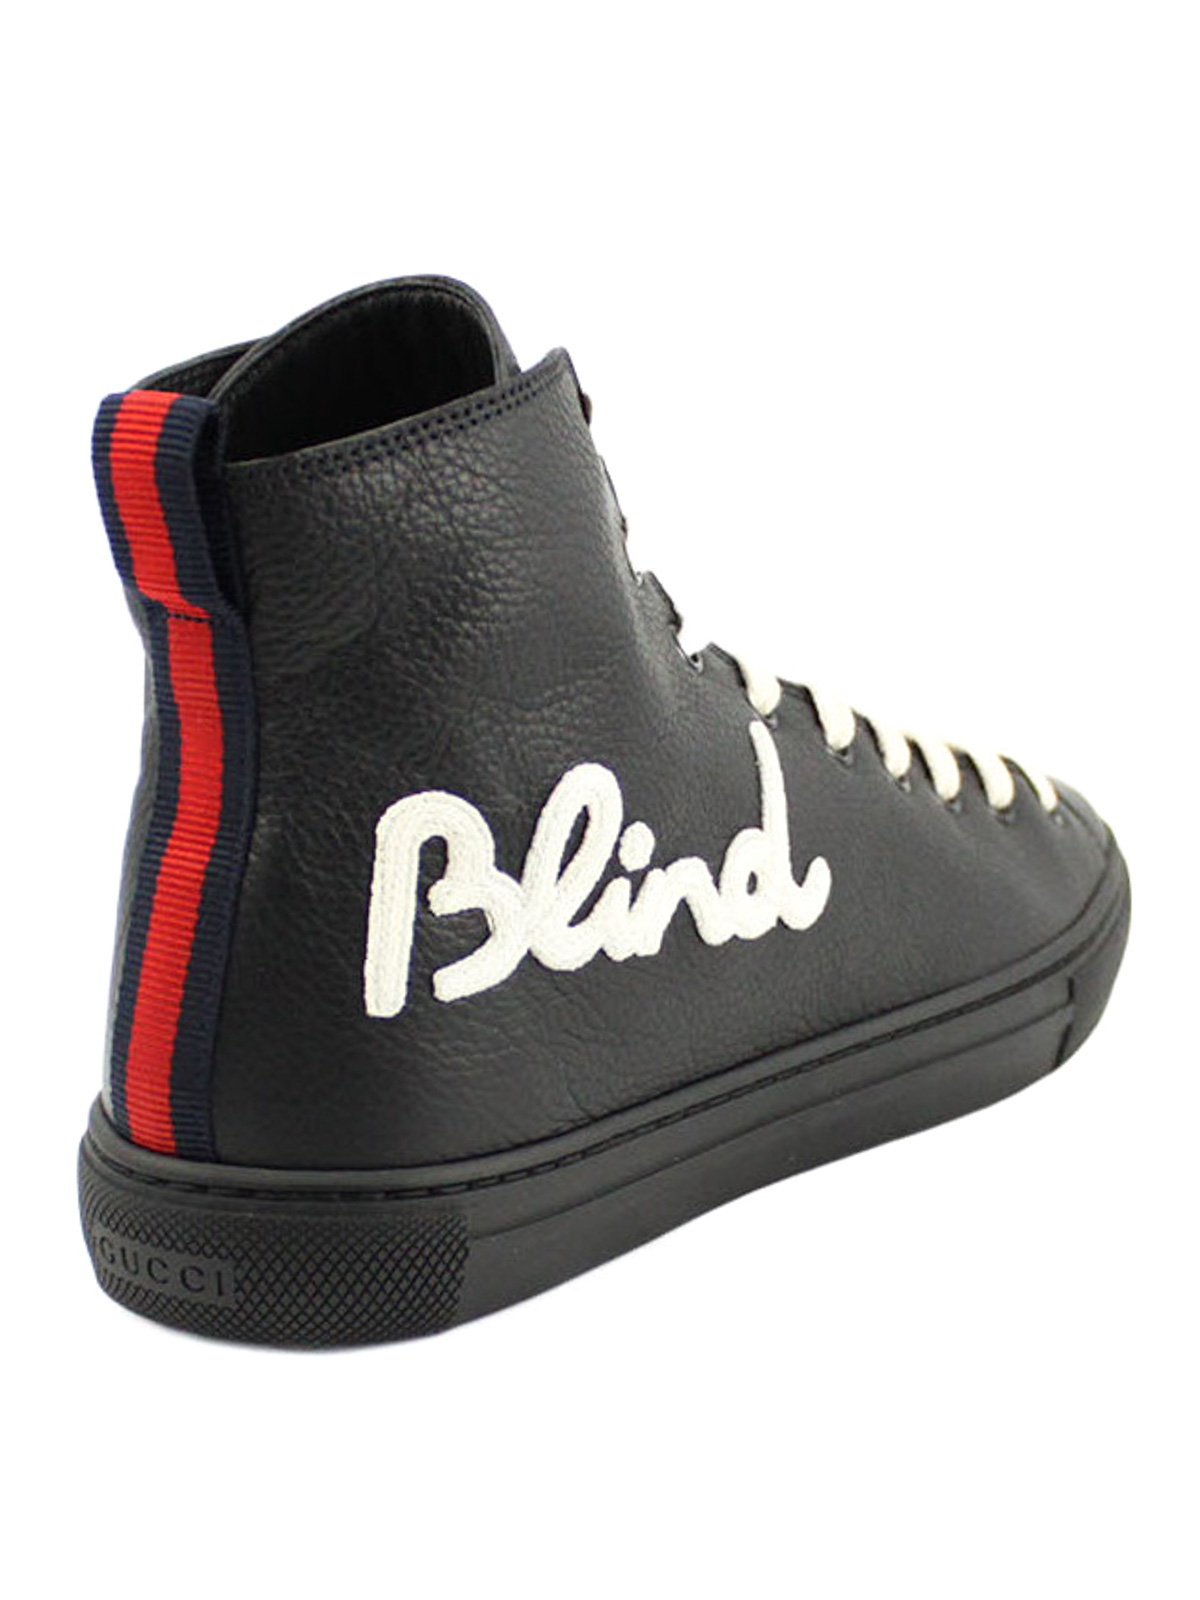 313c546661c Gucci - Blind For Love high-top sneakers - trainers - 449992BXOA01066